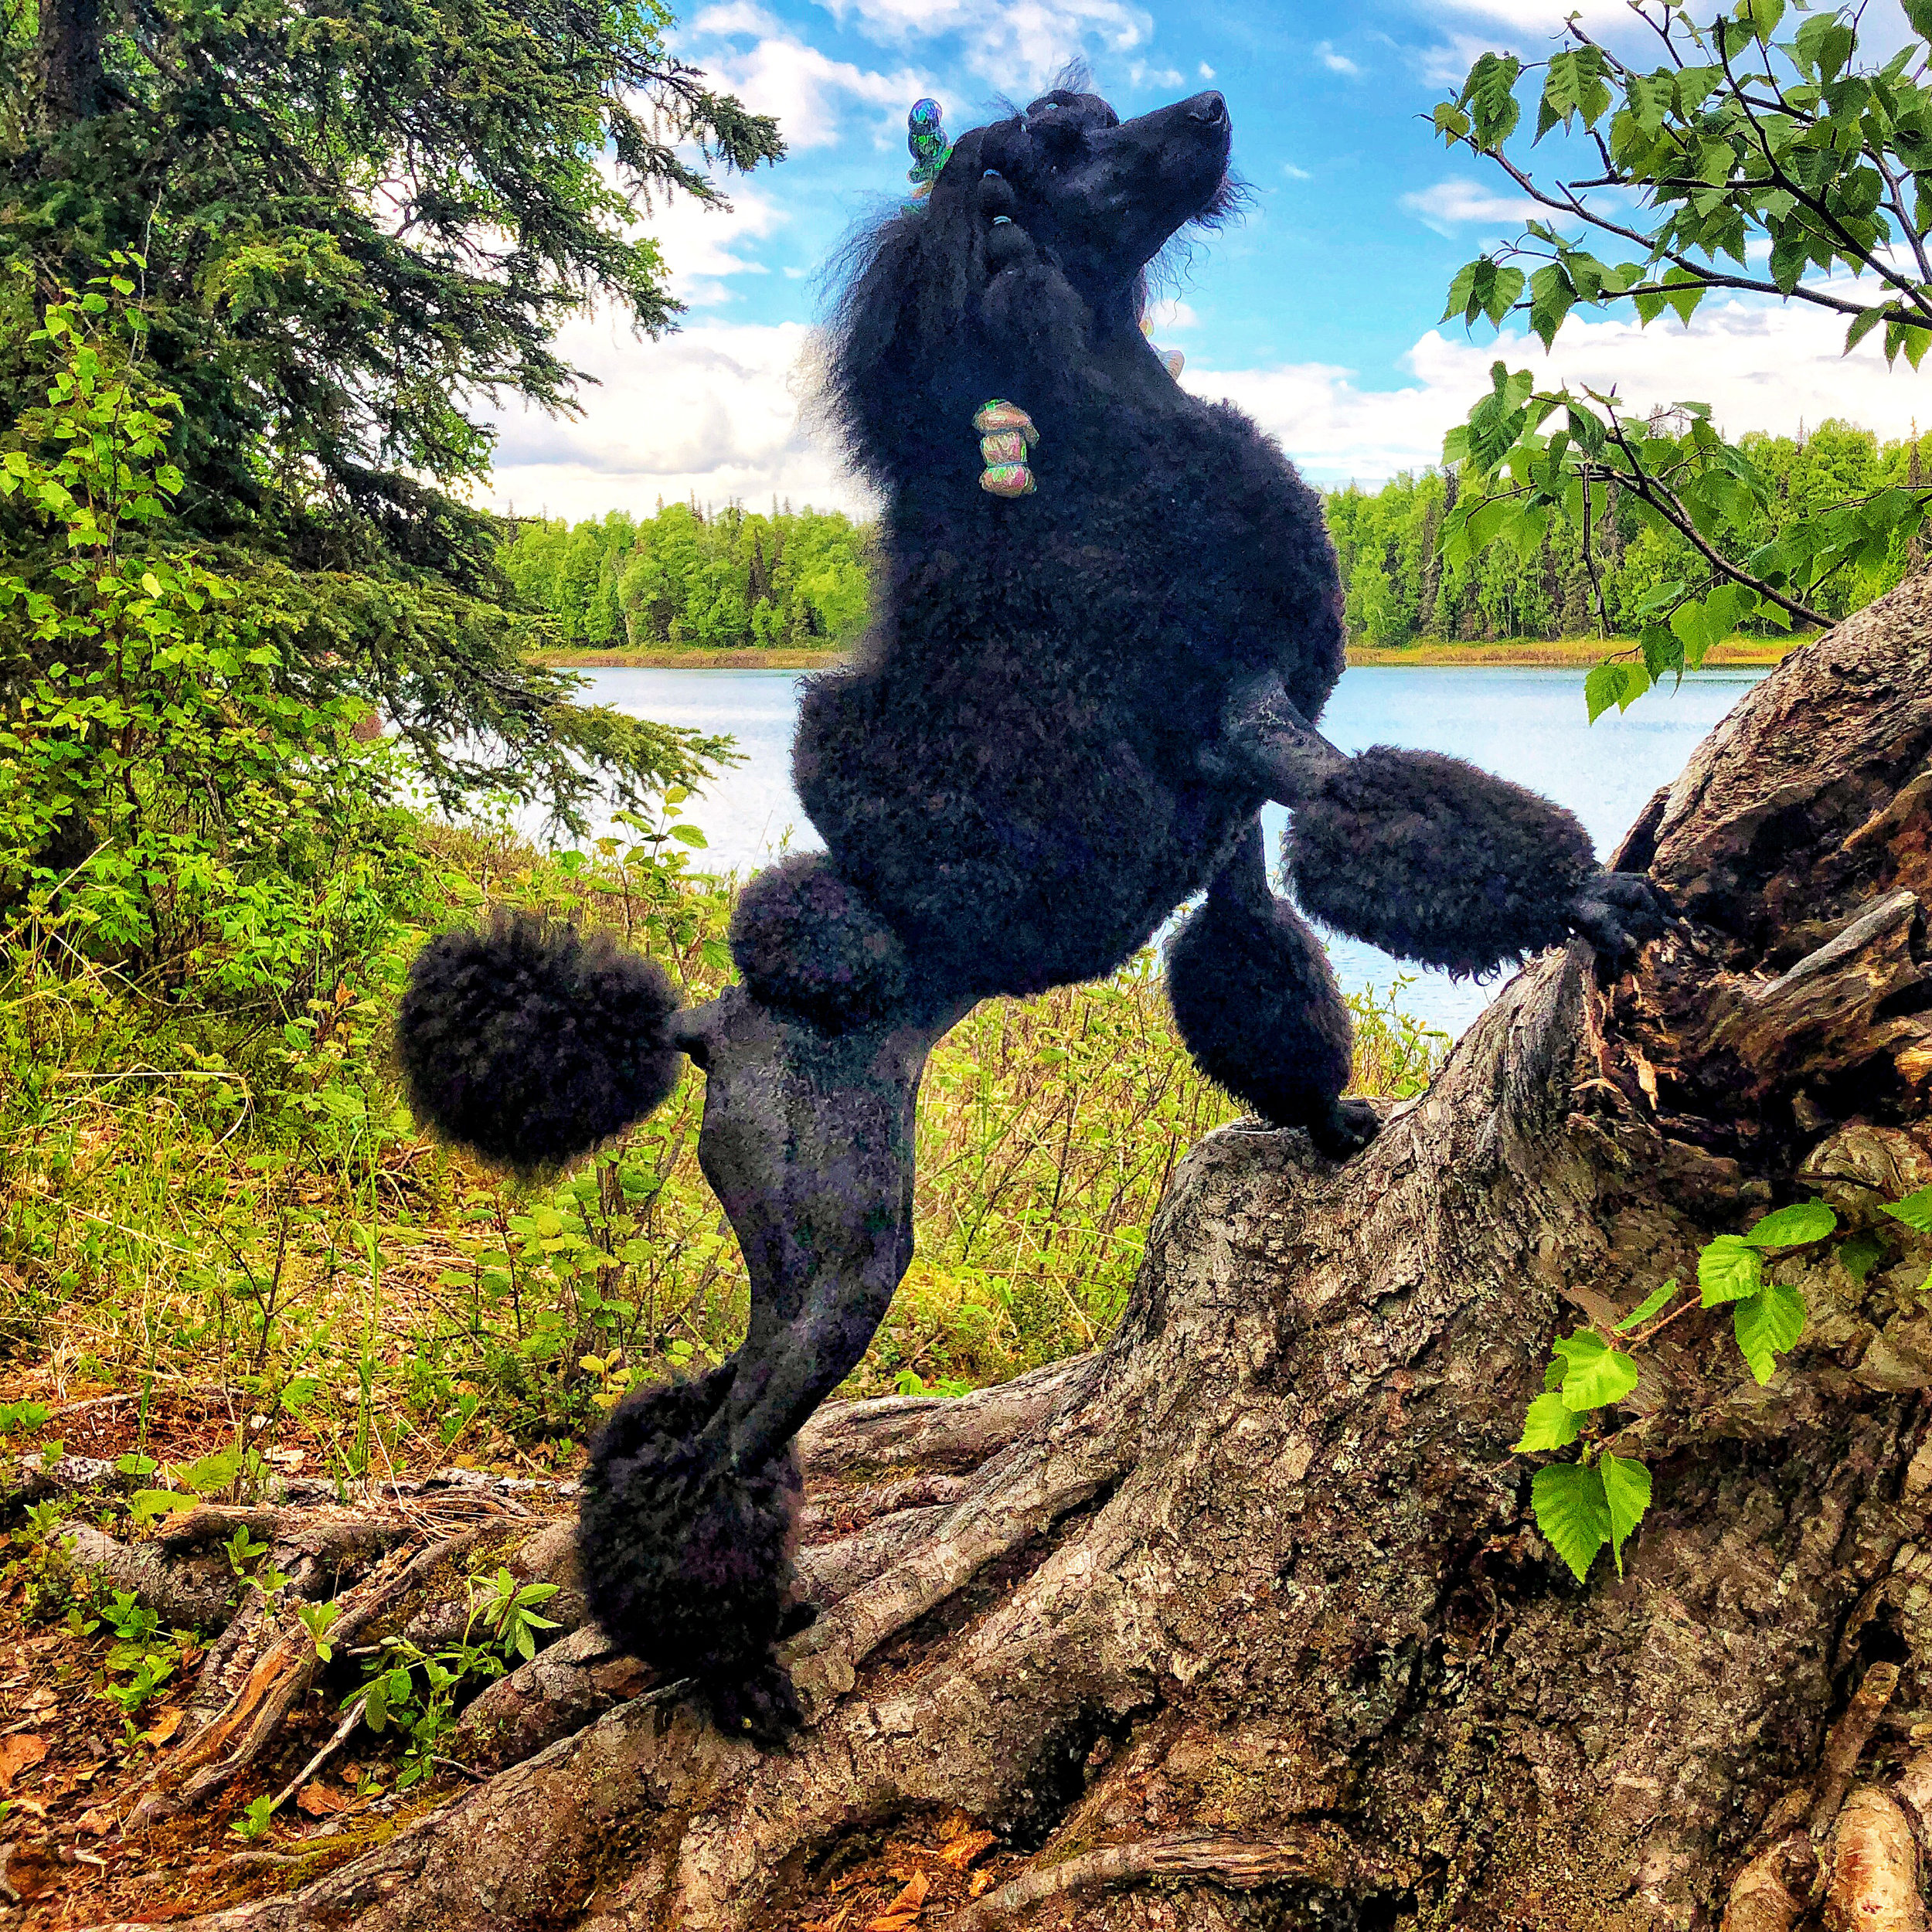 Home to Alaska's Adventure Poodles - In a world where you can be anything… be kind.